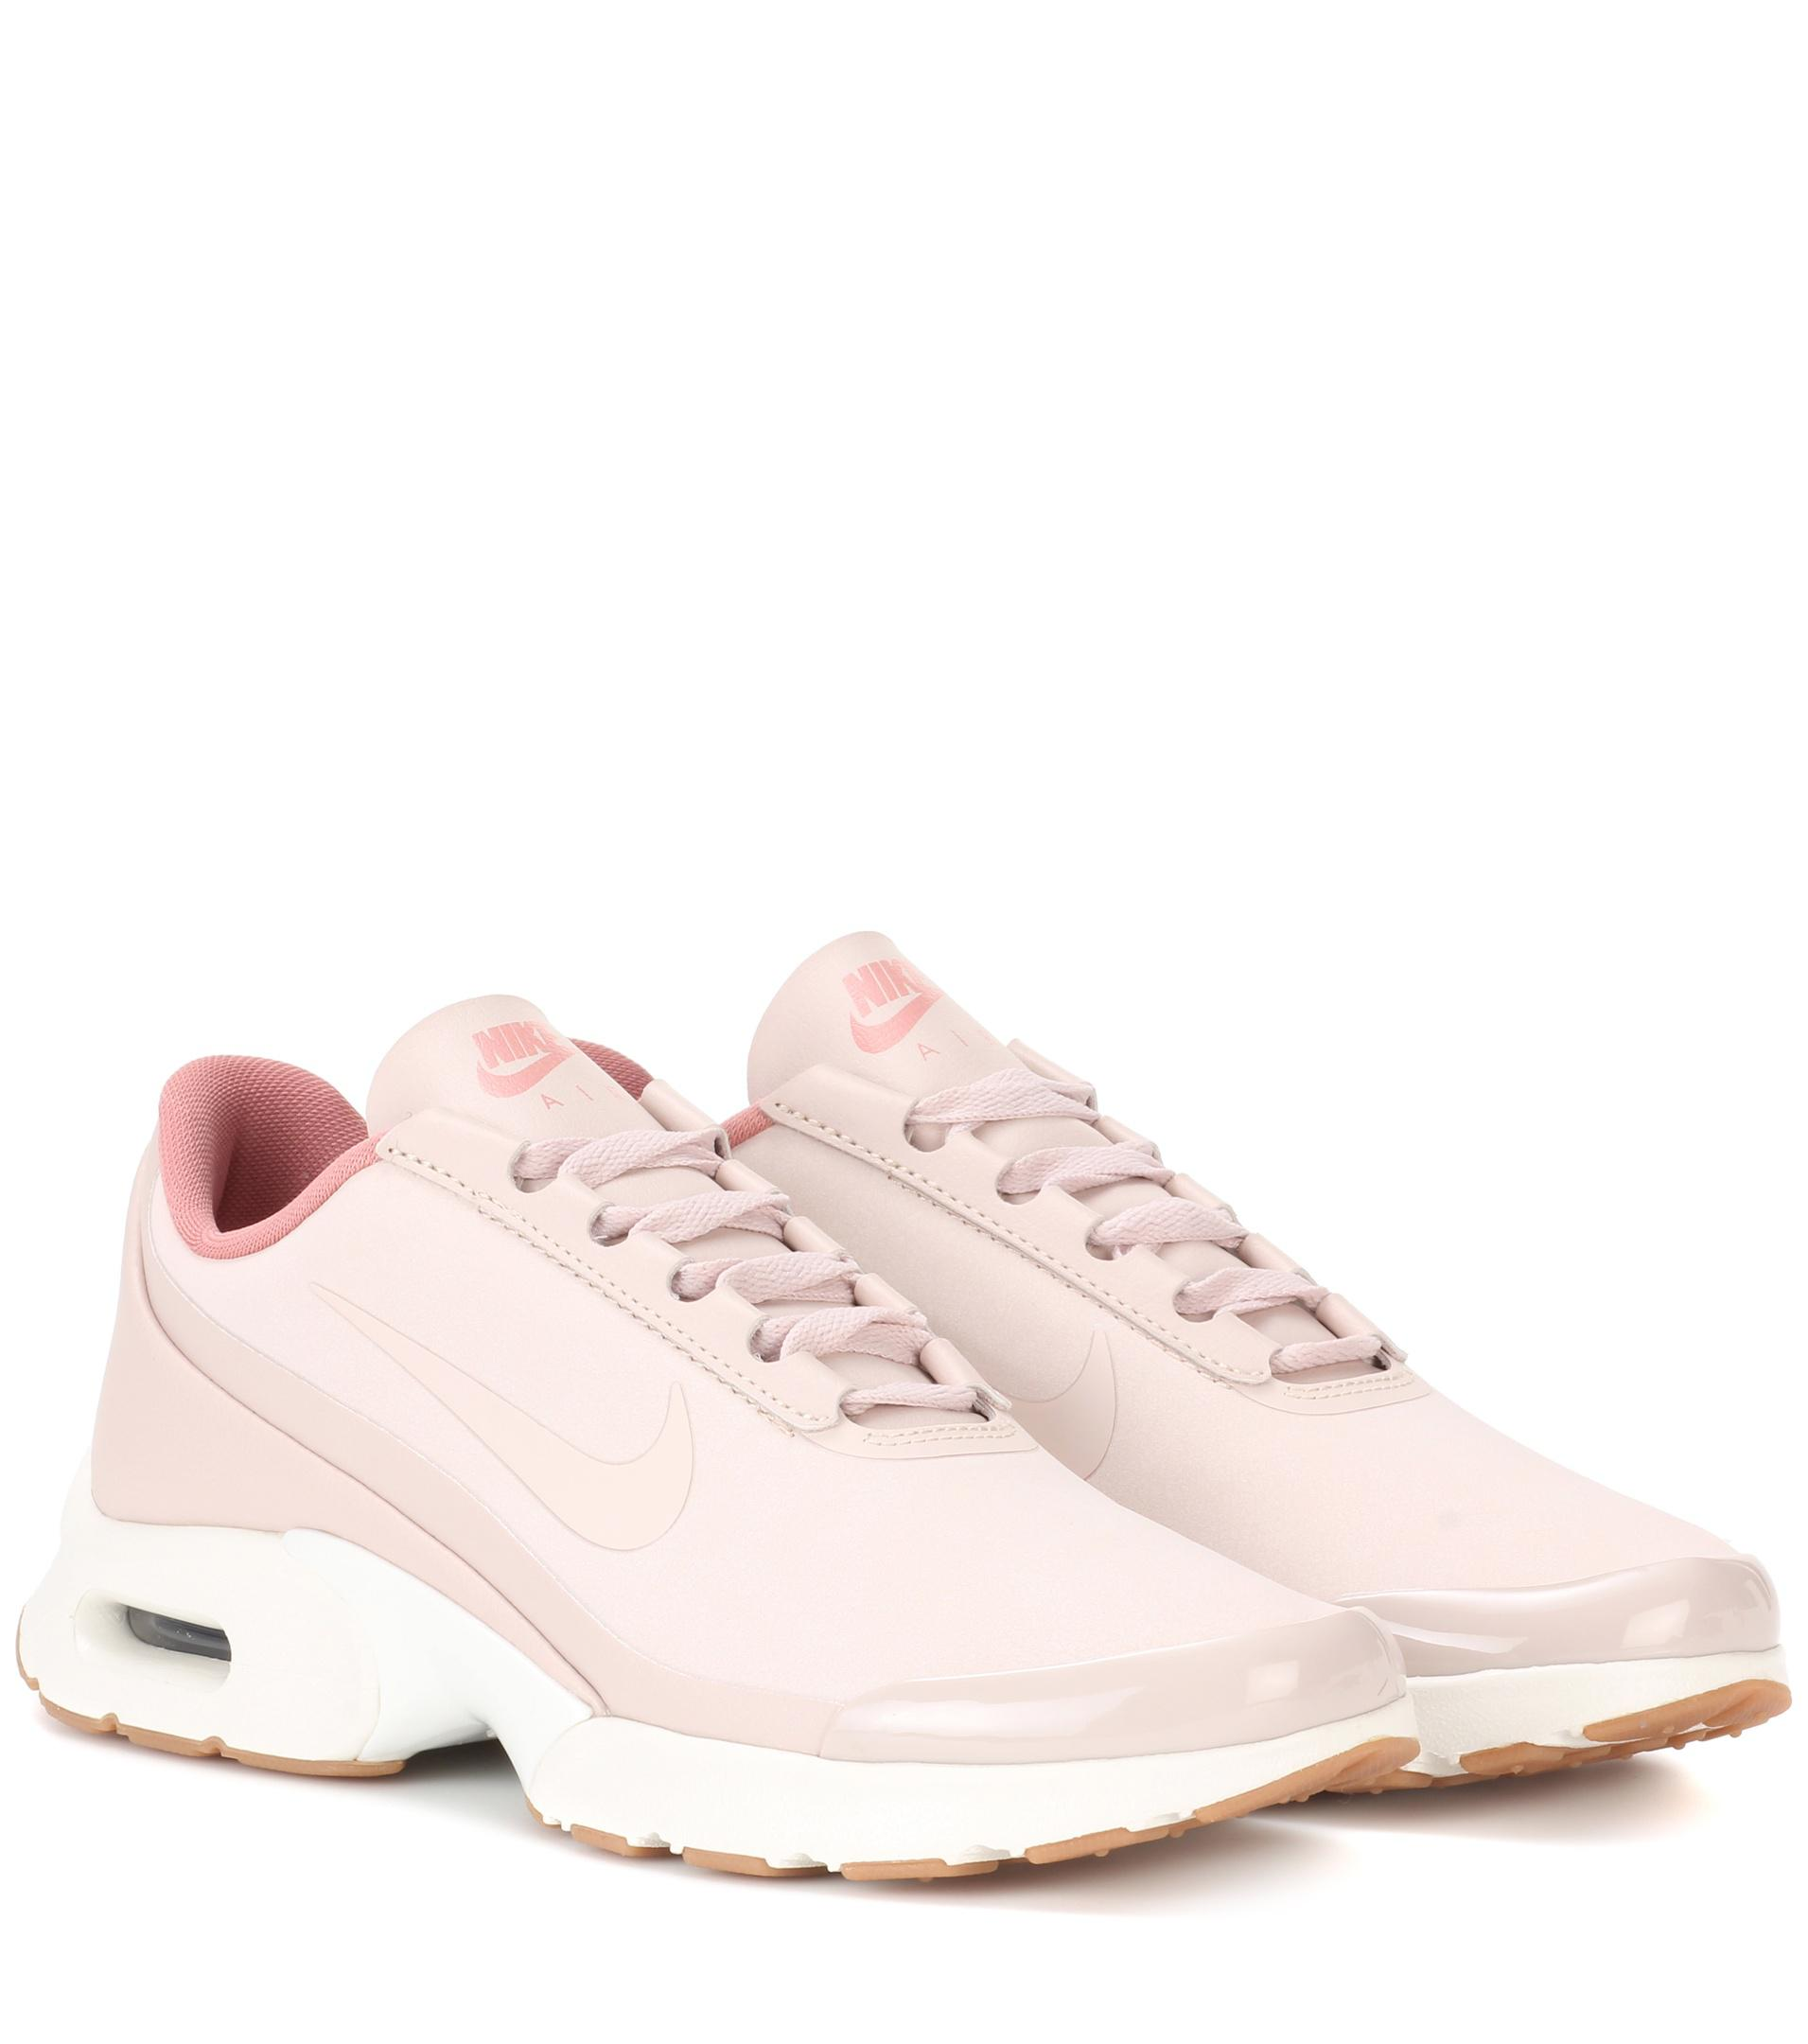 Nike Pink Air Max Jewell Sneakers